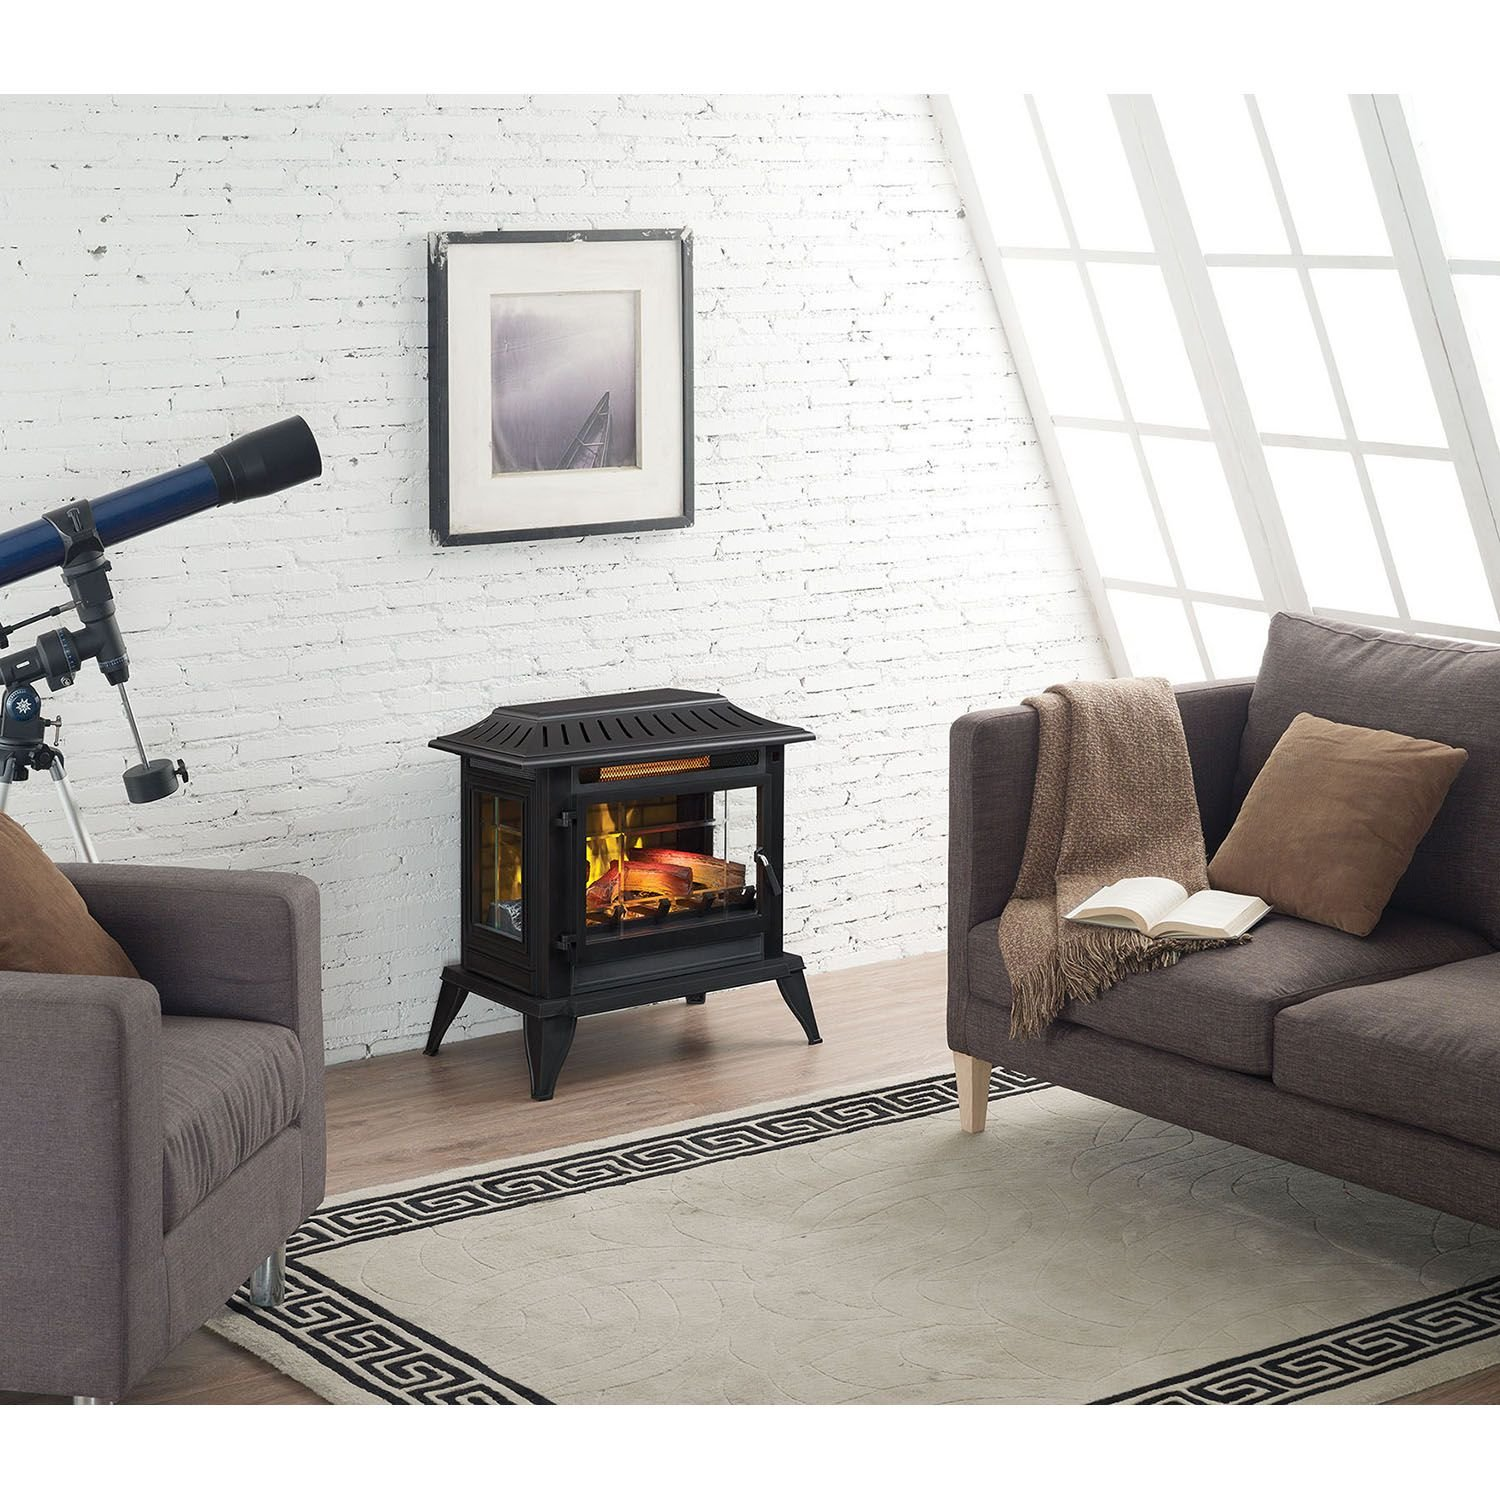 Twin Star International Infragen 3d Electric Fireplace Stove